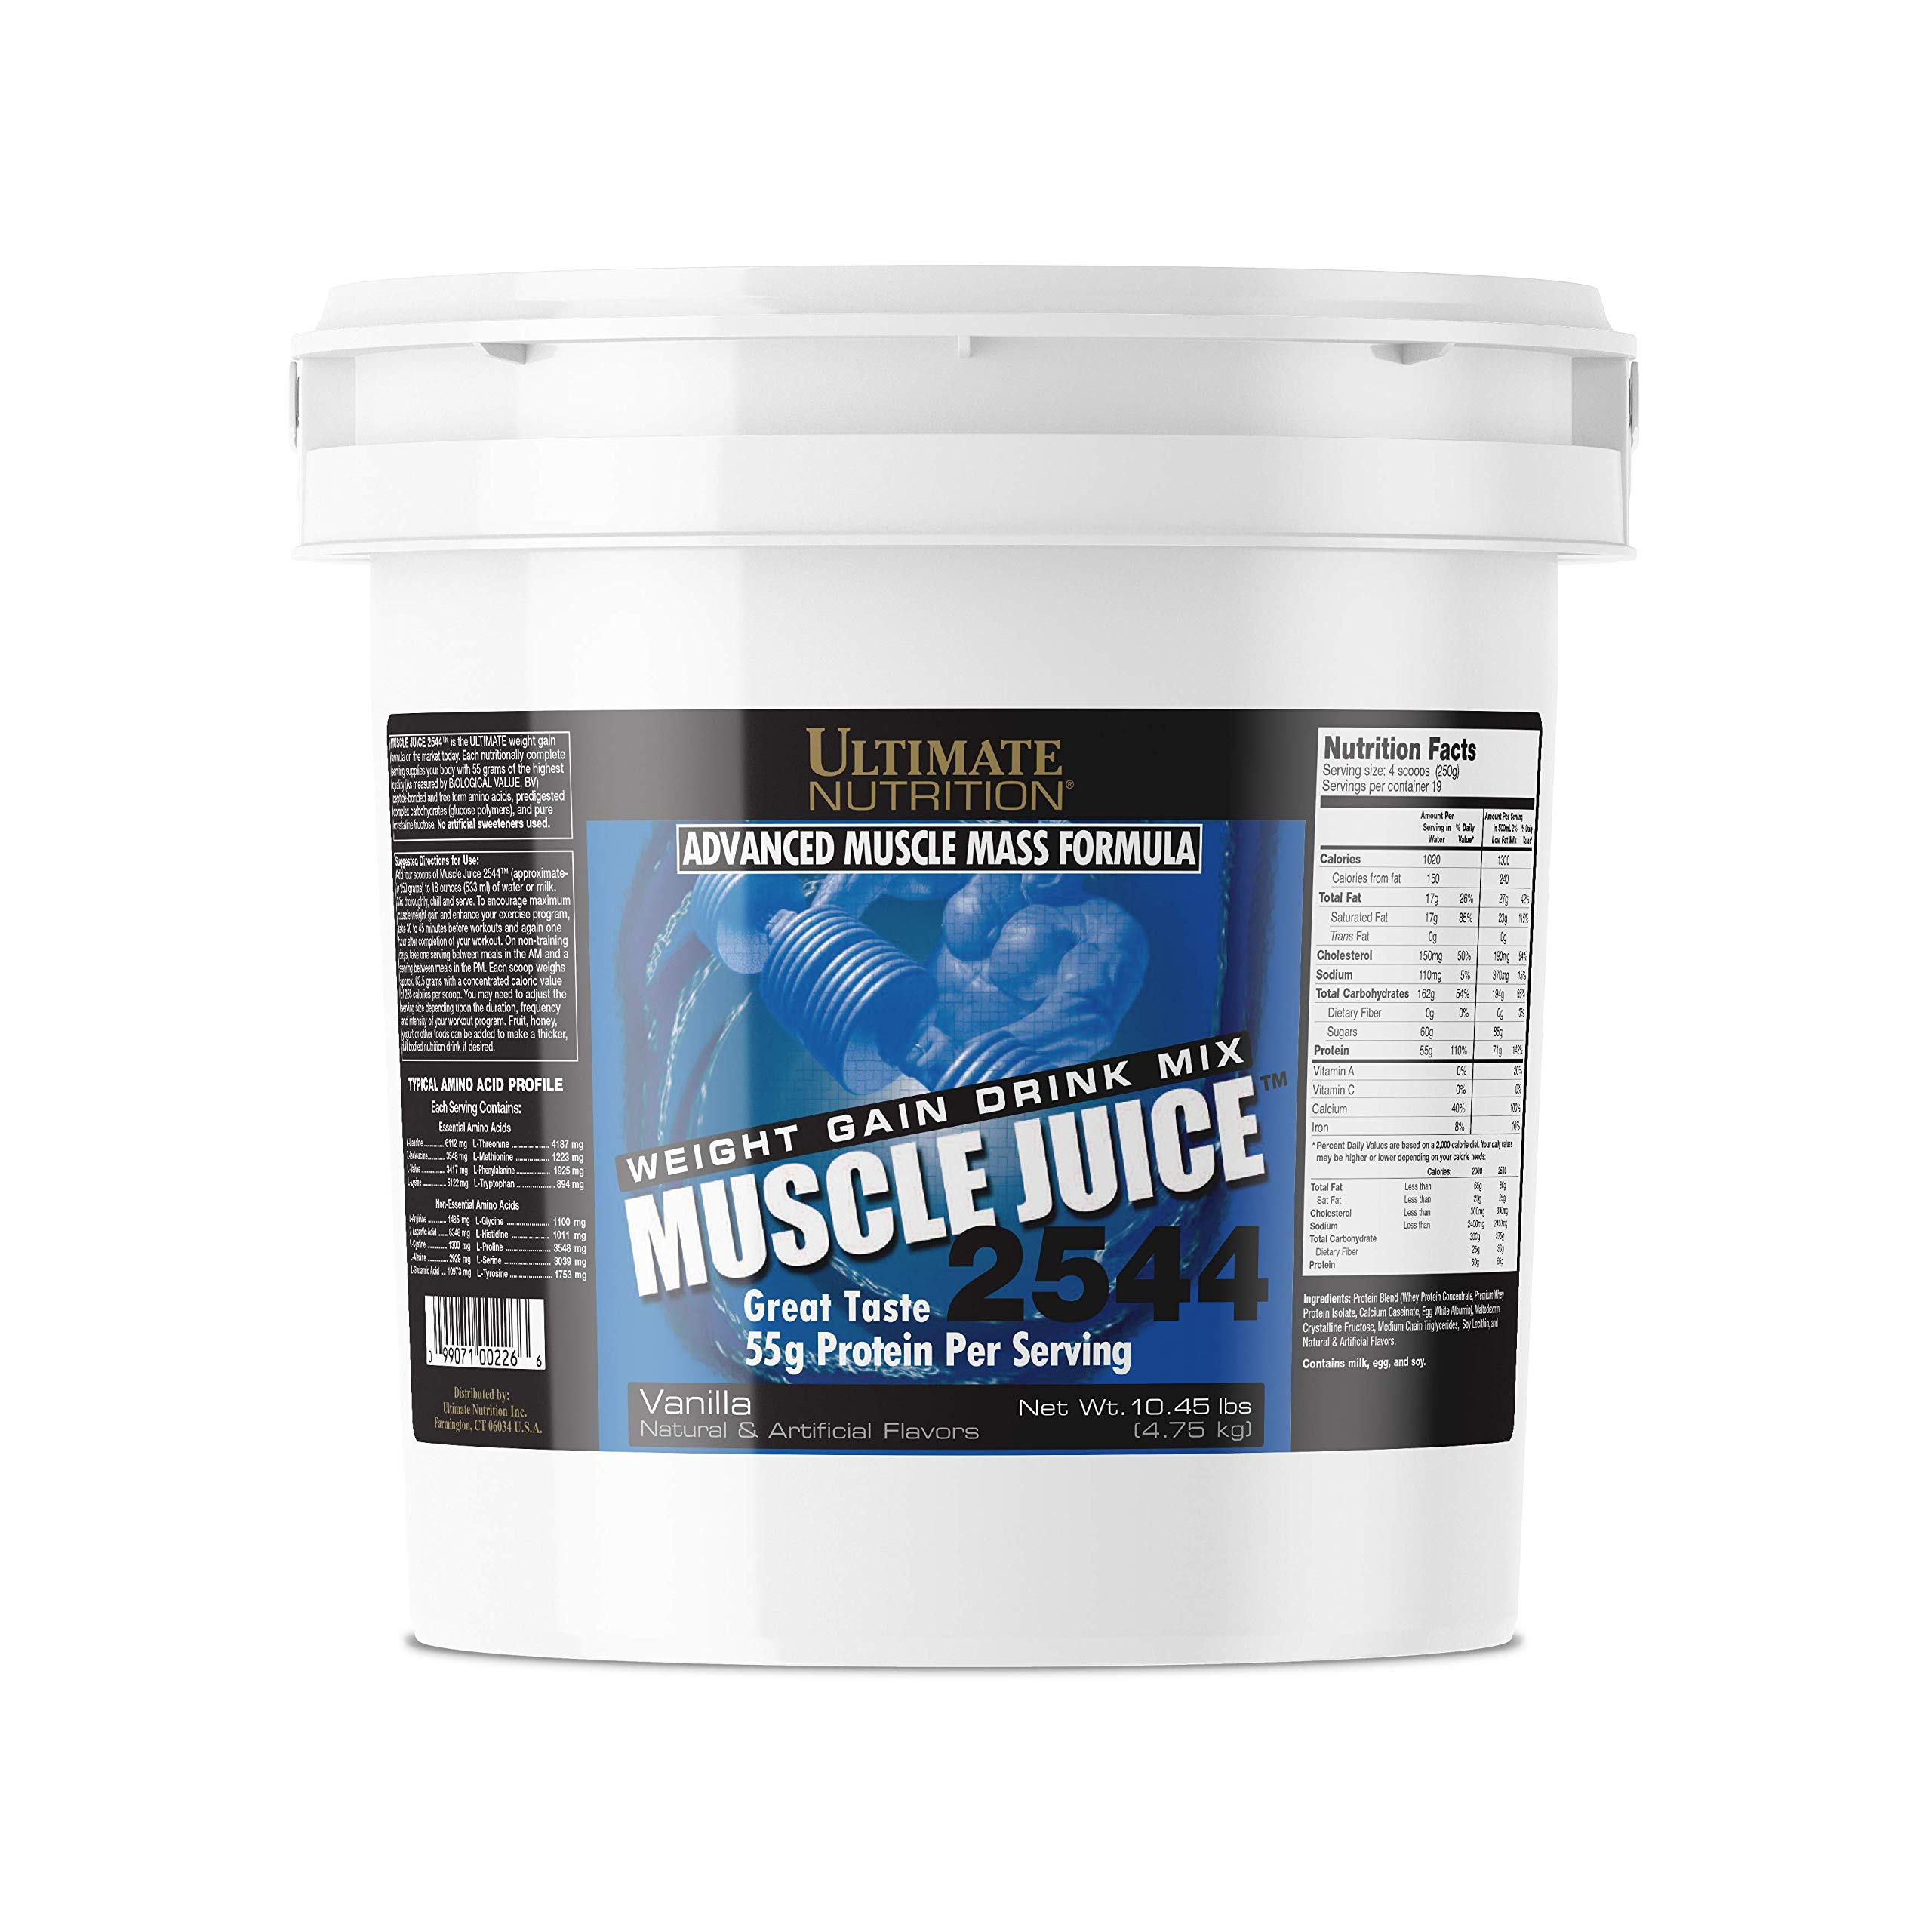 Ultimate Nutrition Muscle Juice 2544 Classic Gainer Protein (Vanilla, 10 Pounds) by Ultimate Nutrition